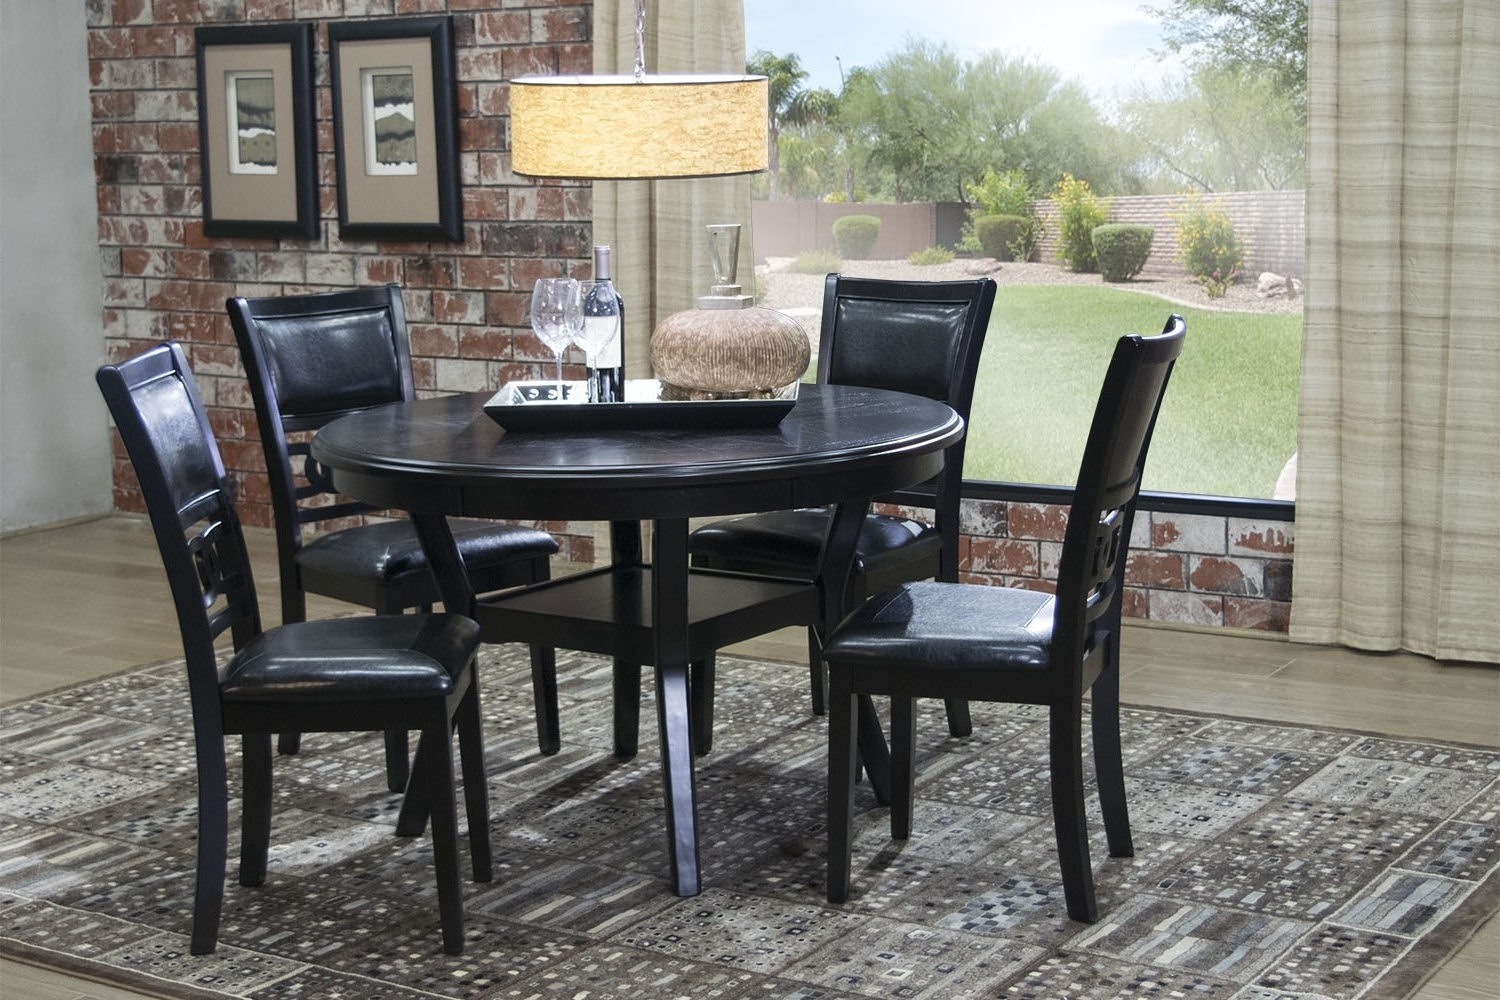 Save Mor Online And In Store With Jefferson Extension Round Dining Tables (View 19 of 25)